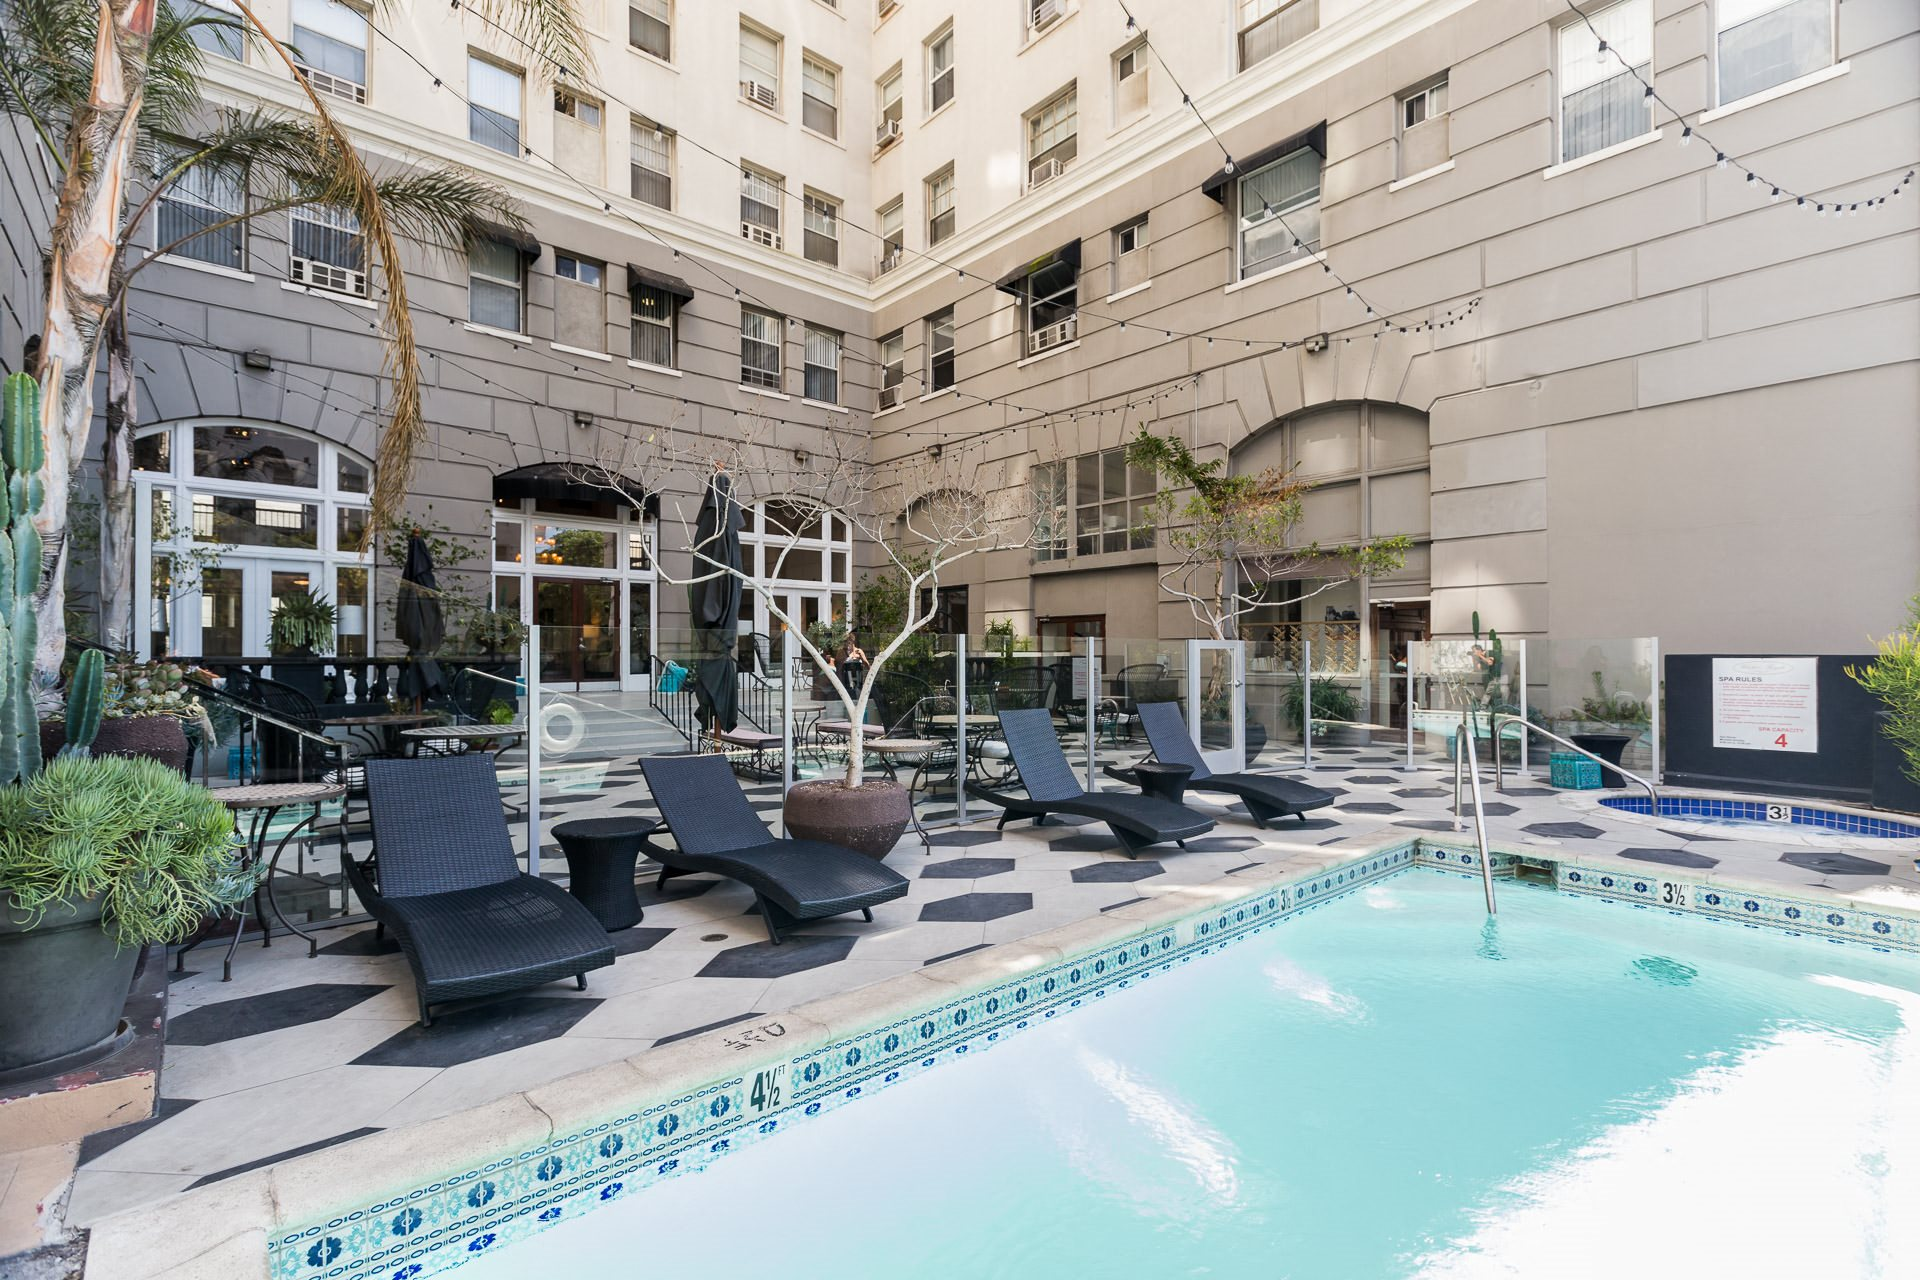 Pool Photo of Wilshire Royale Apartments, 2619 Wilshire Blvd, Los Angeles, CA 90057